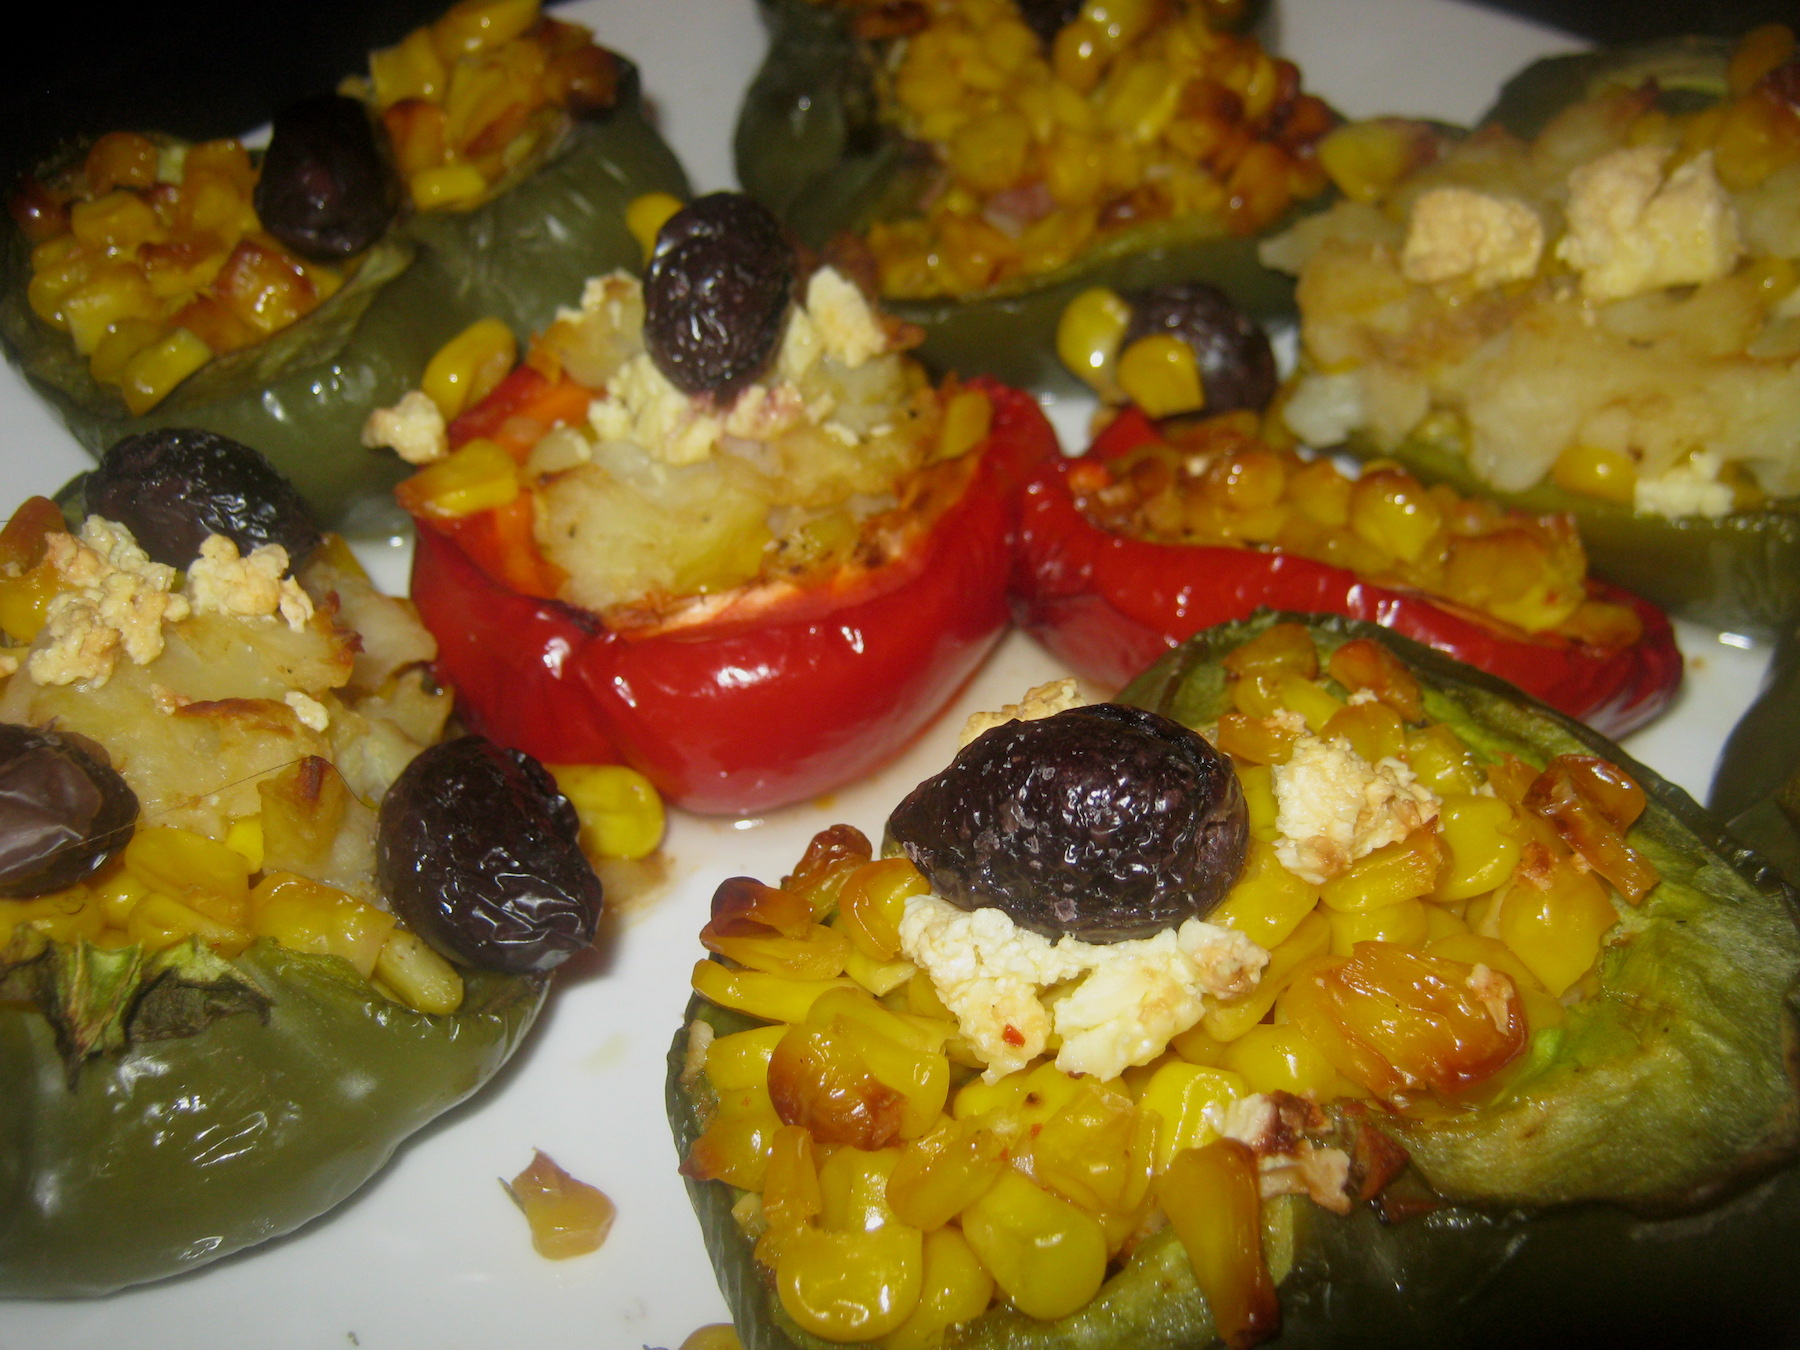 Stuffed bell peppers on a plate